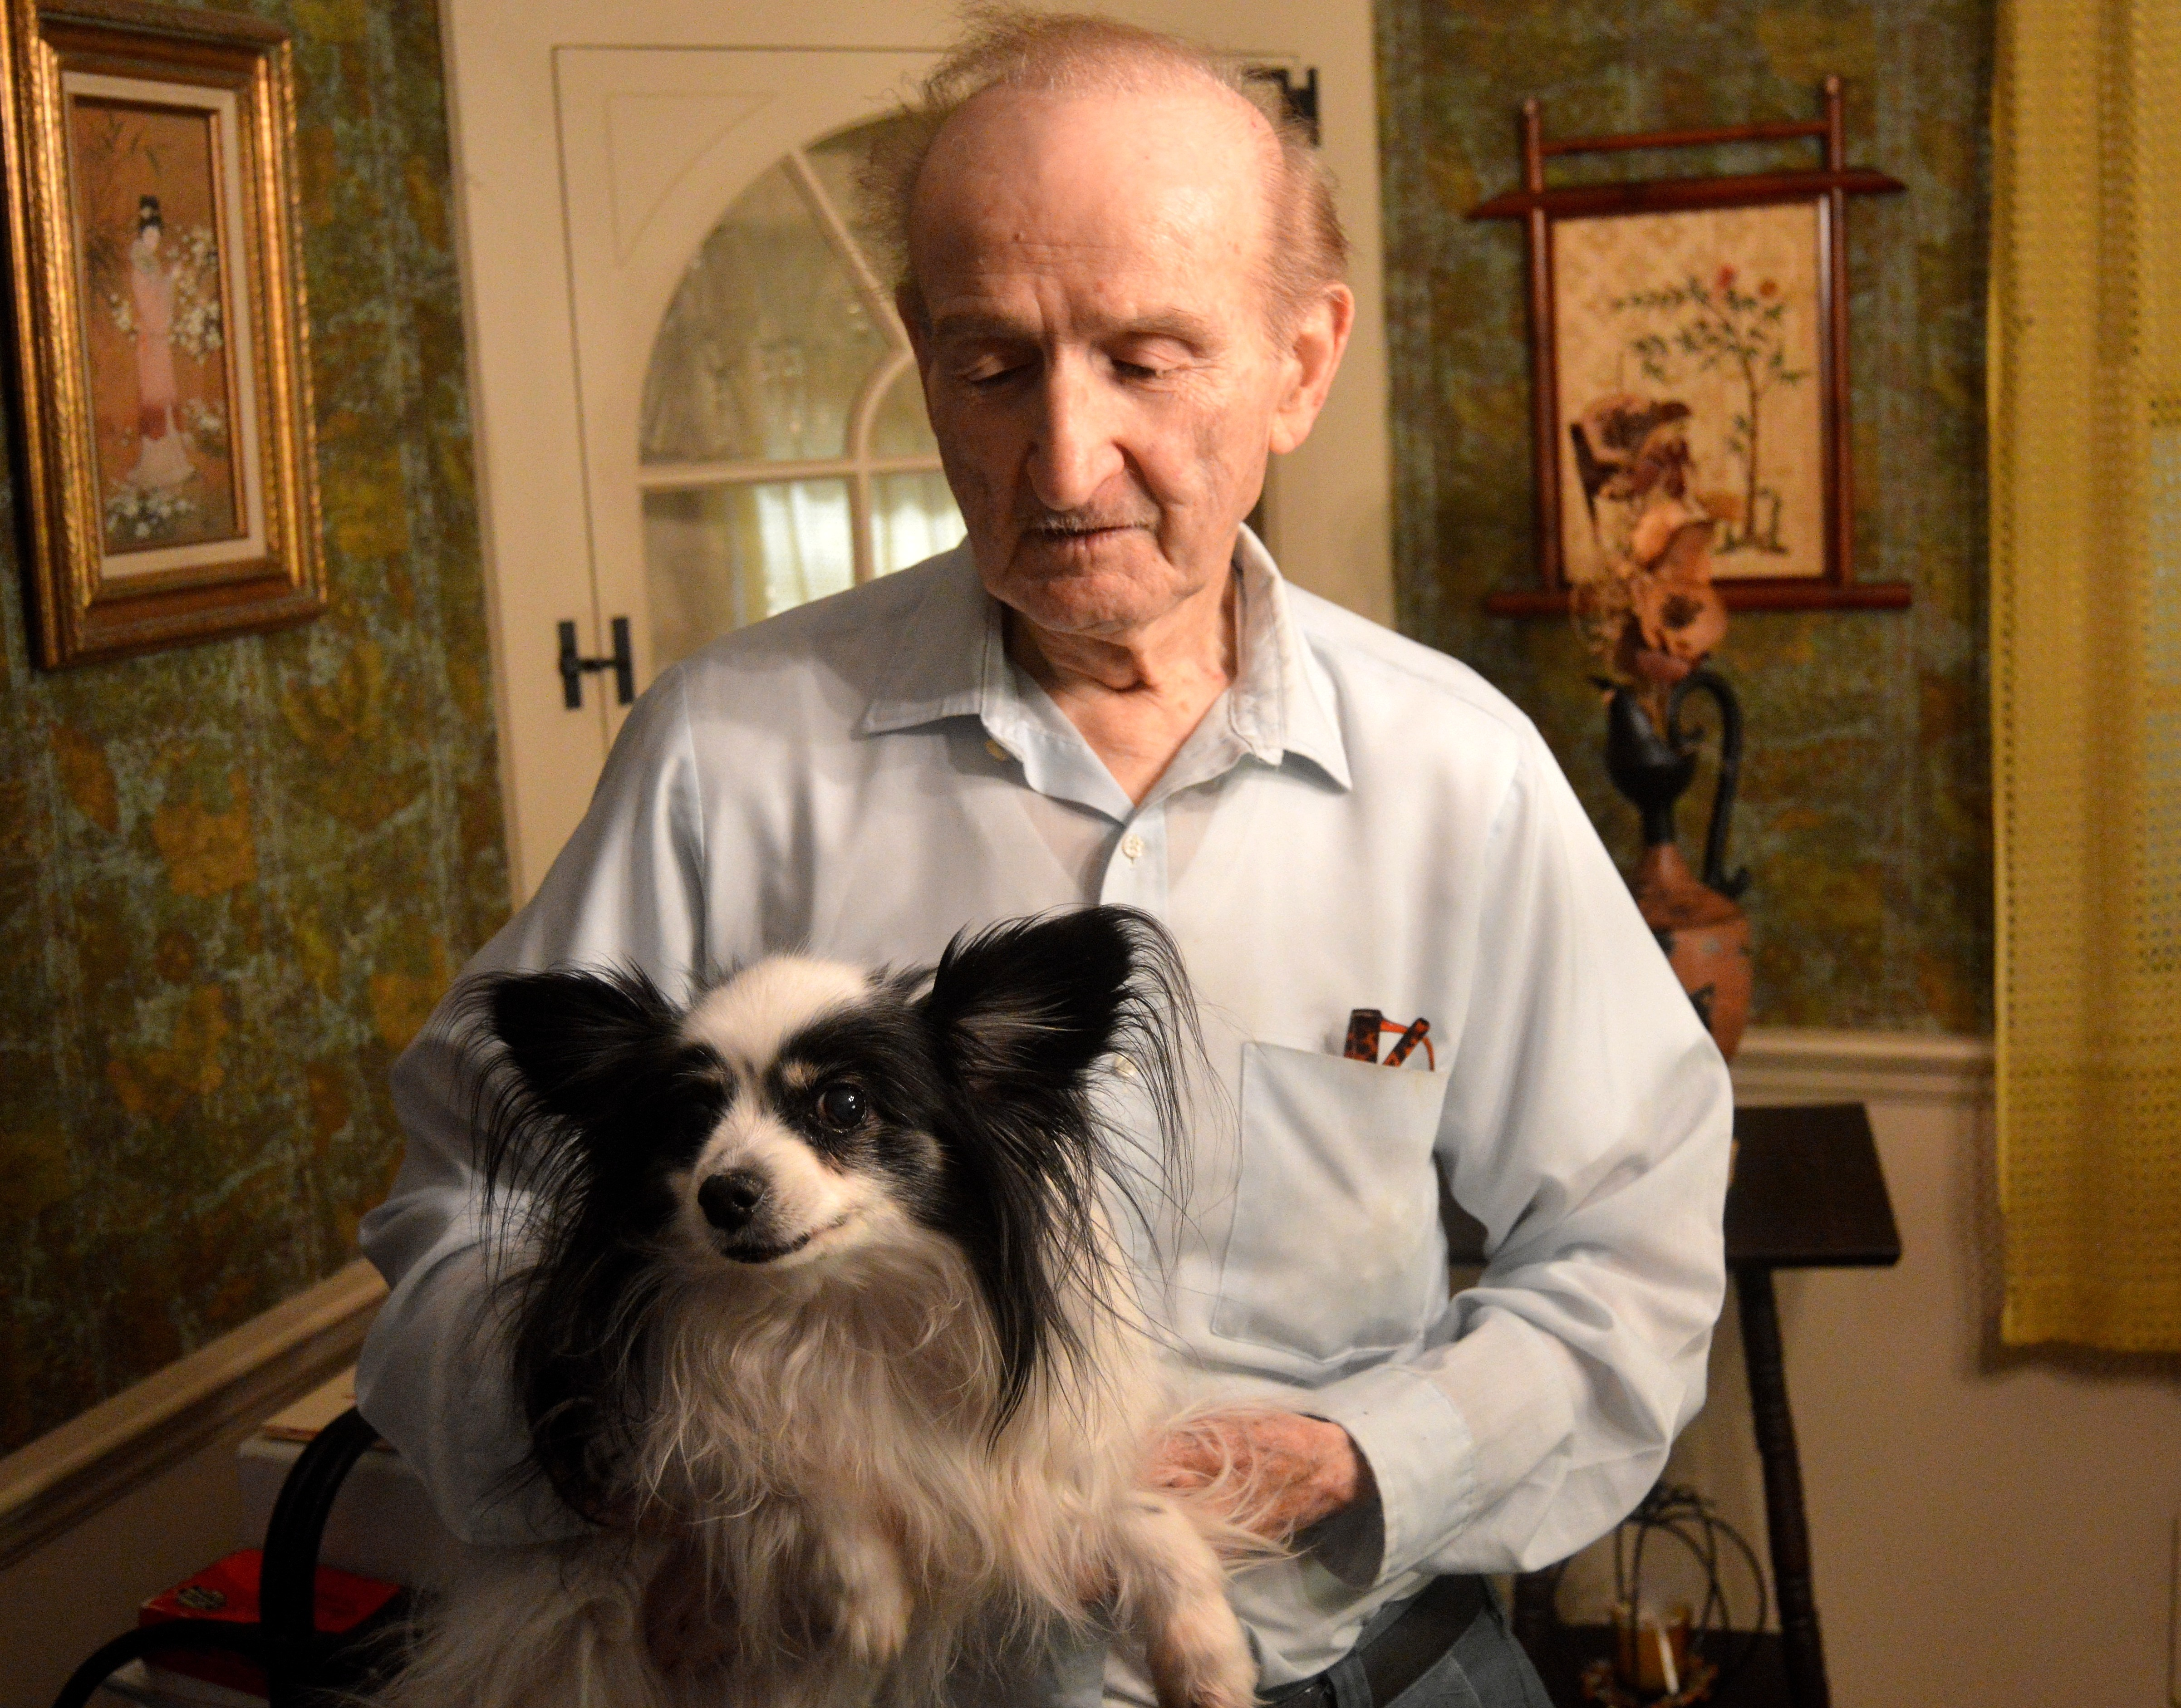 93559570a014539a1139_Ray_Swidersky_close_up_with_his_dog.JPG